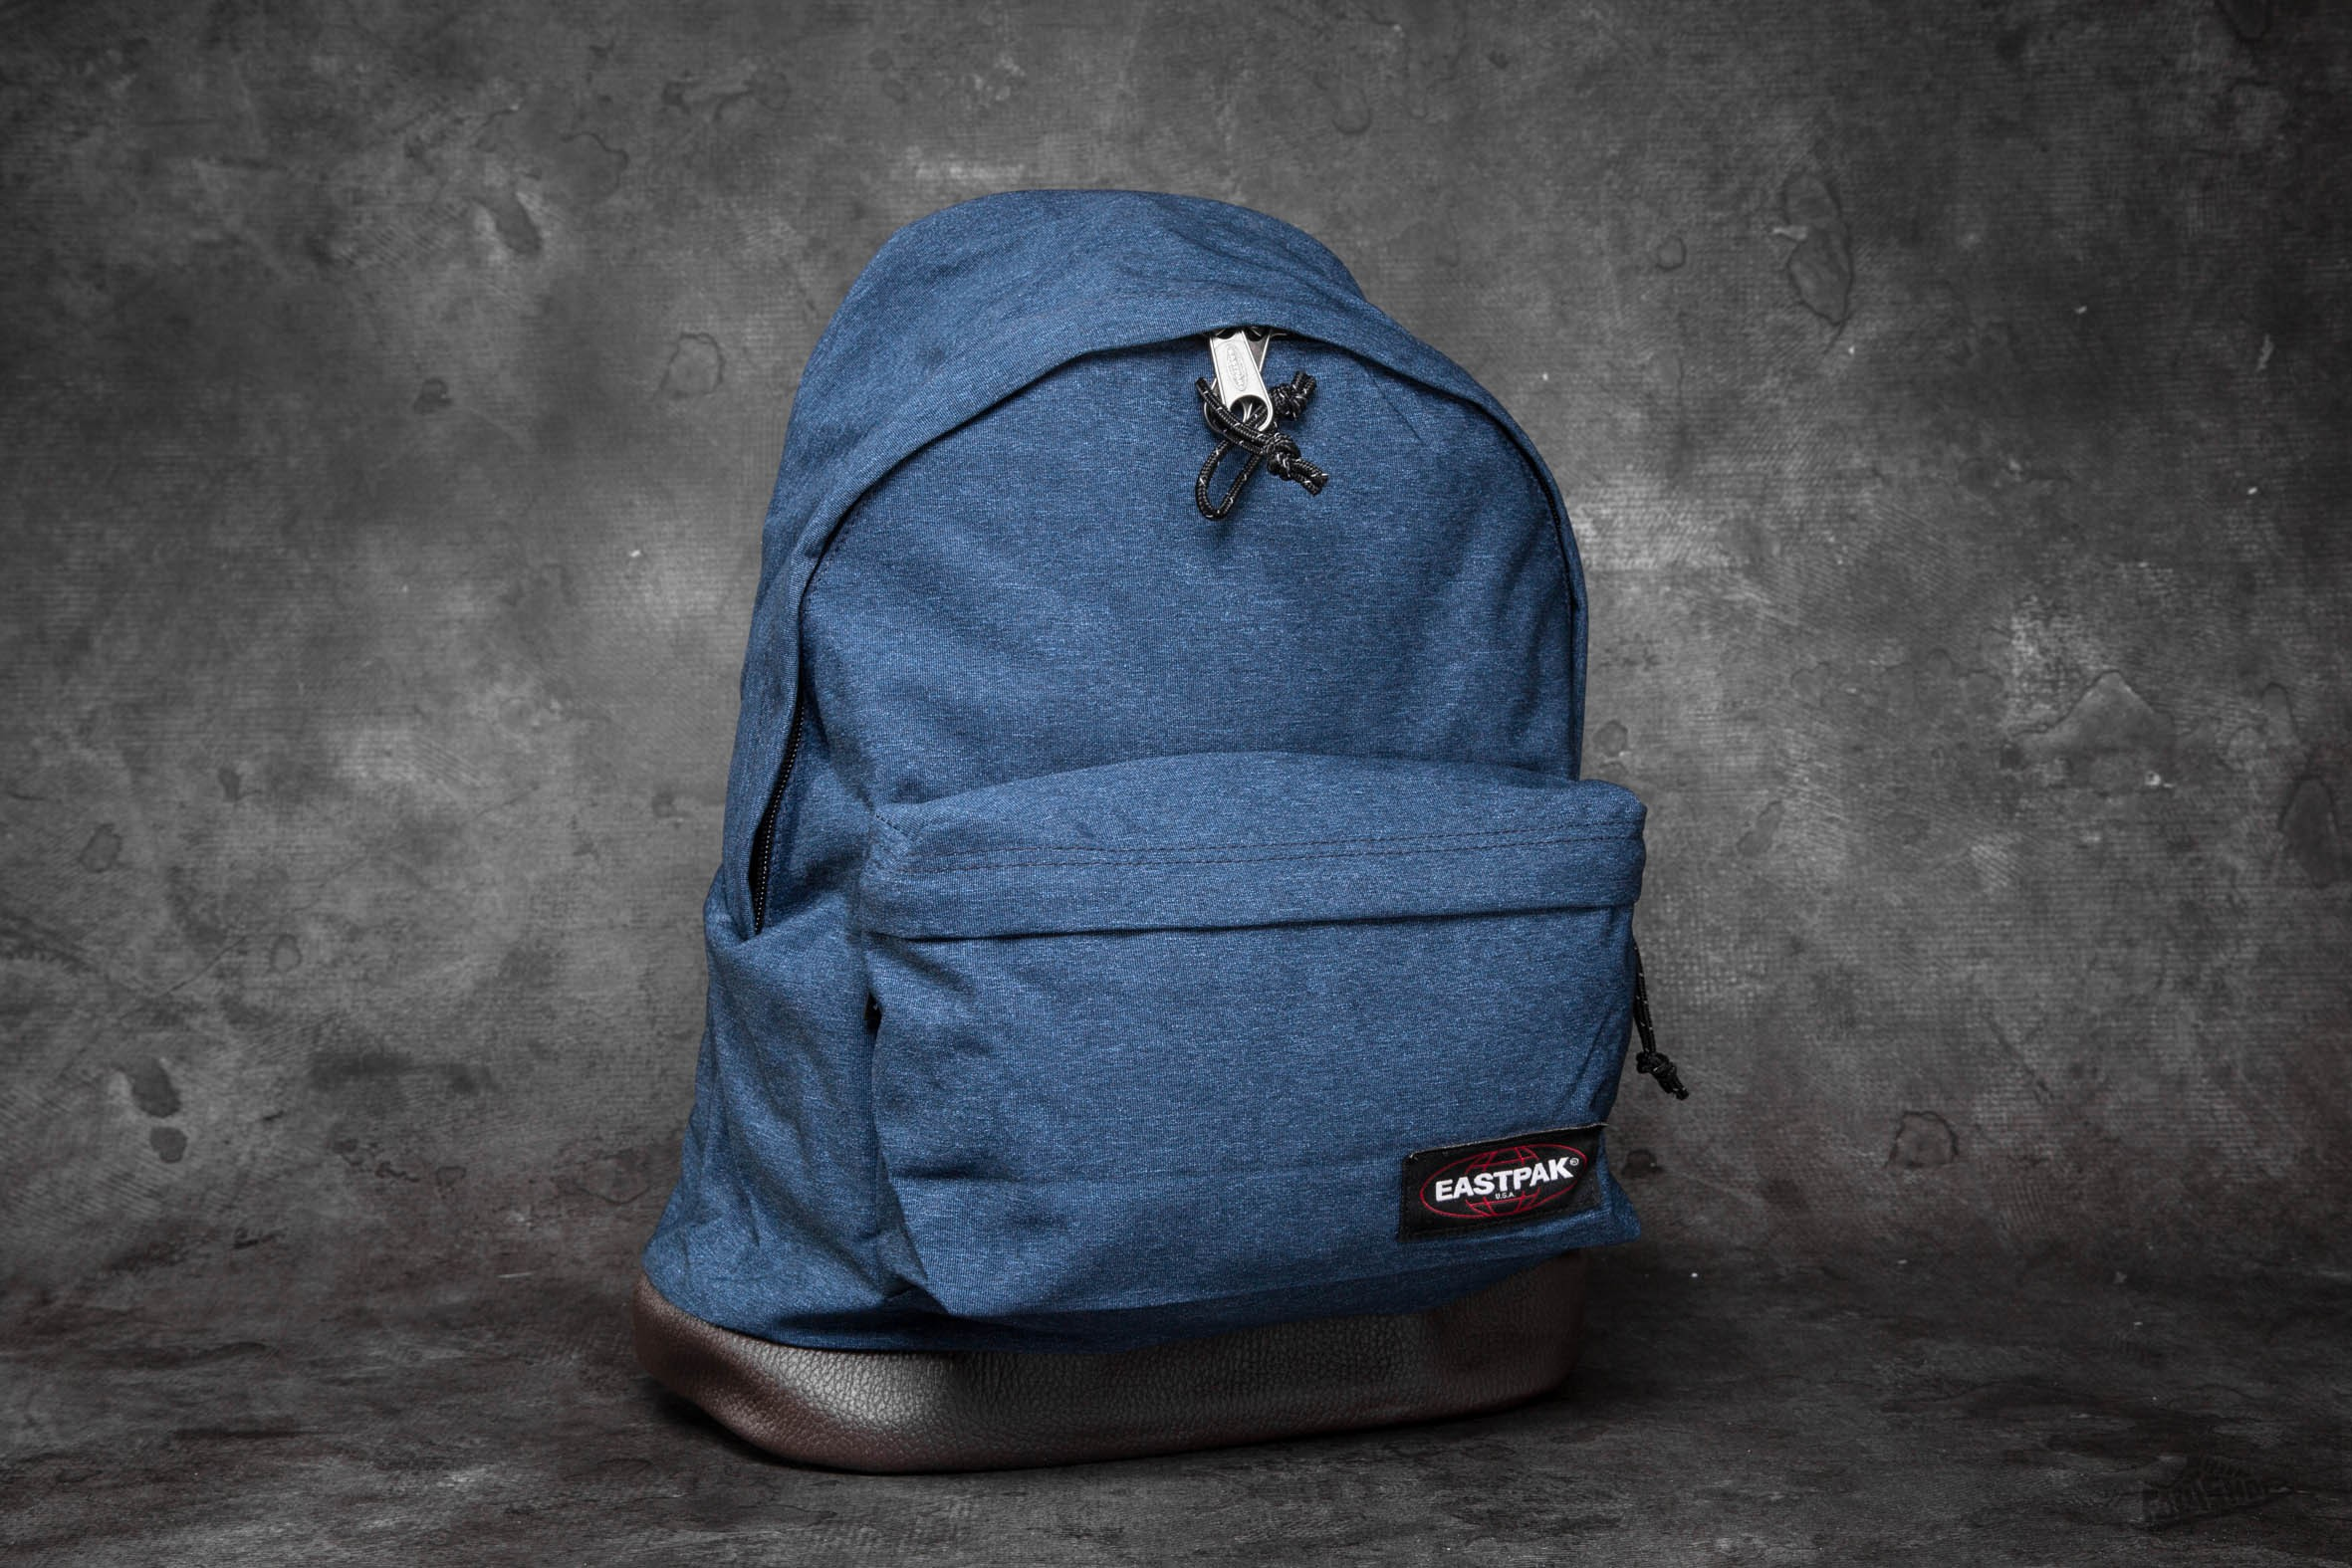 eastpak-wyoming-d